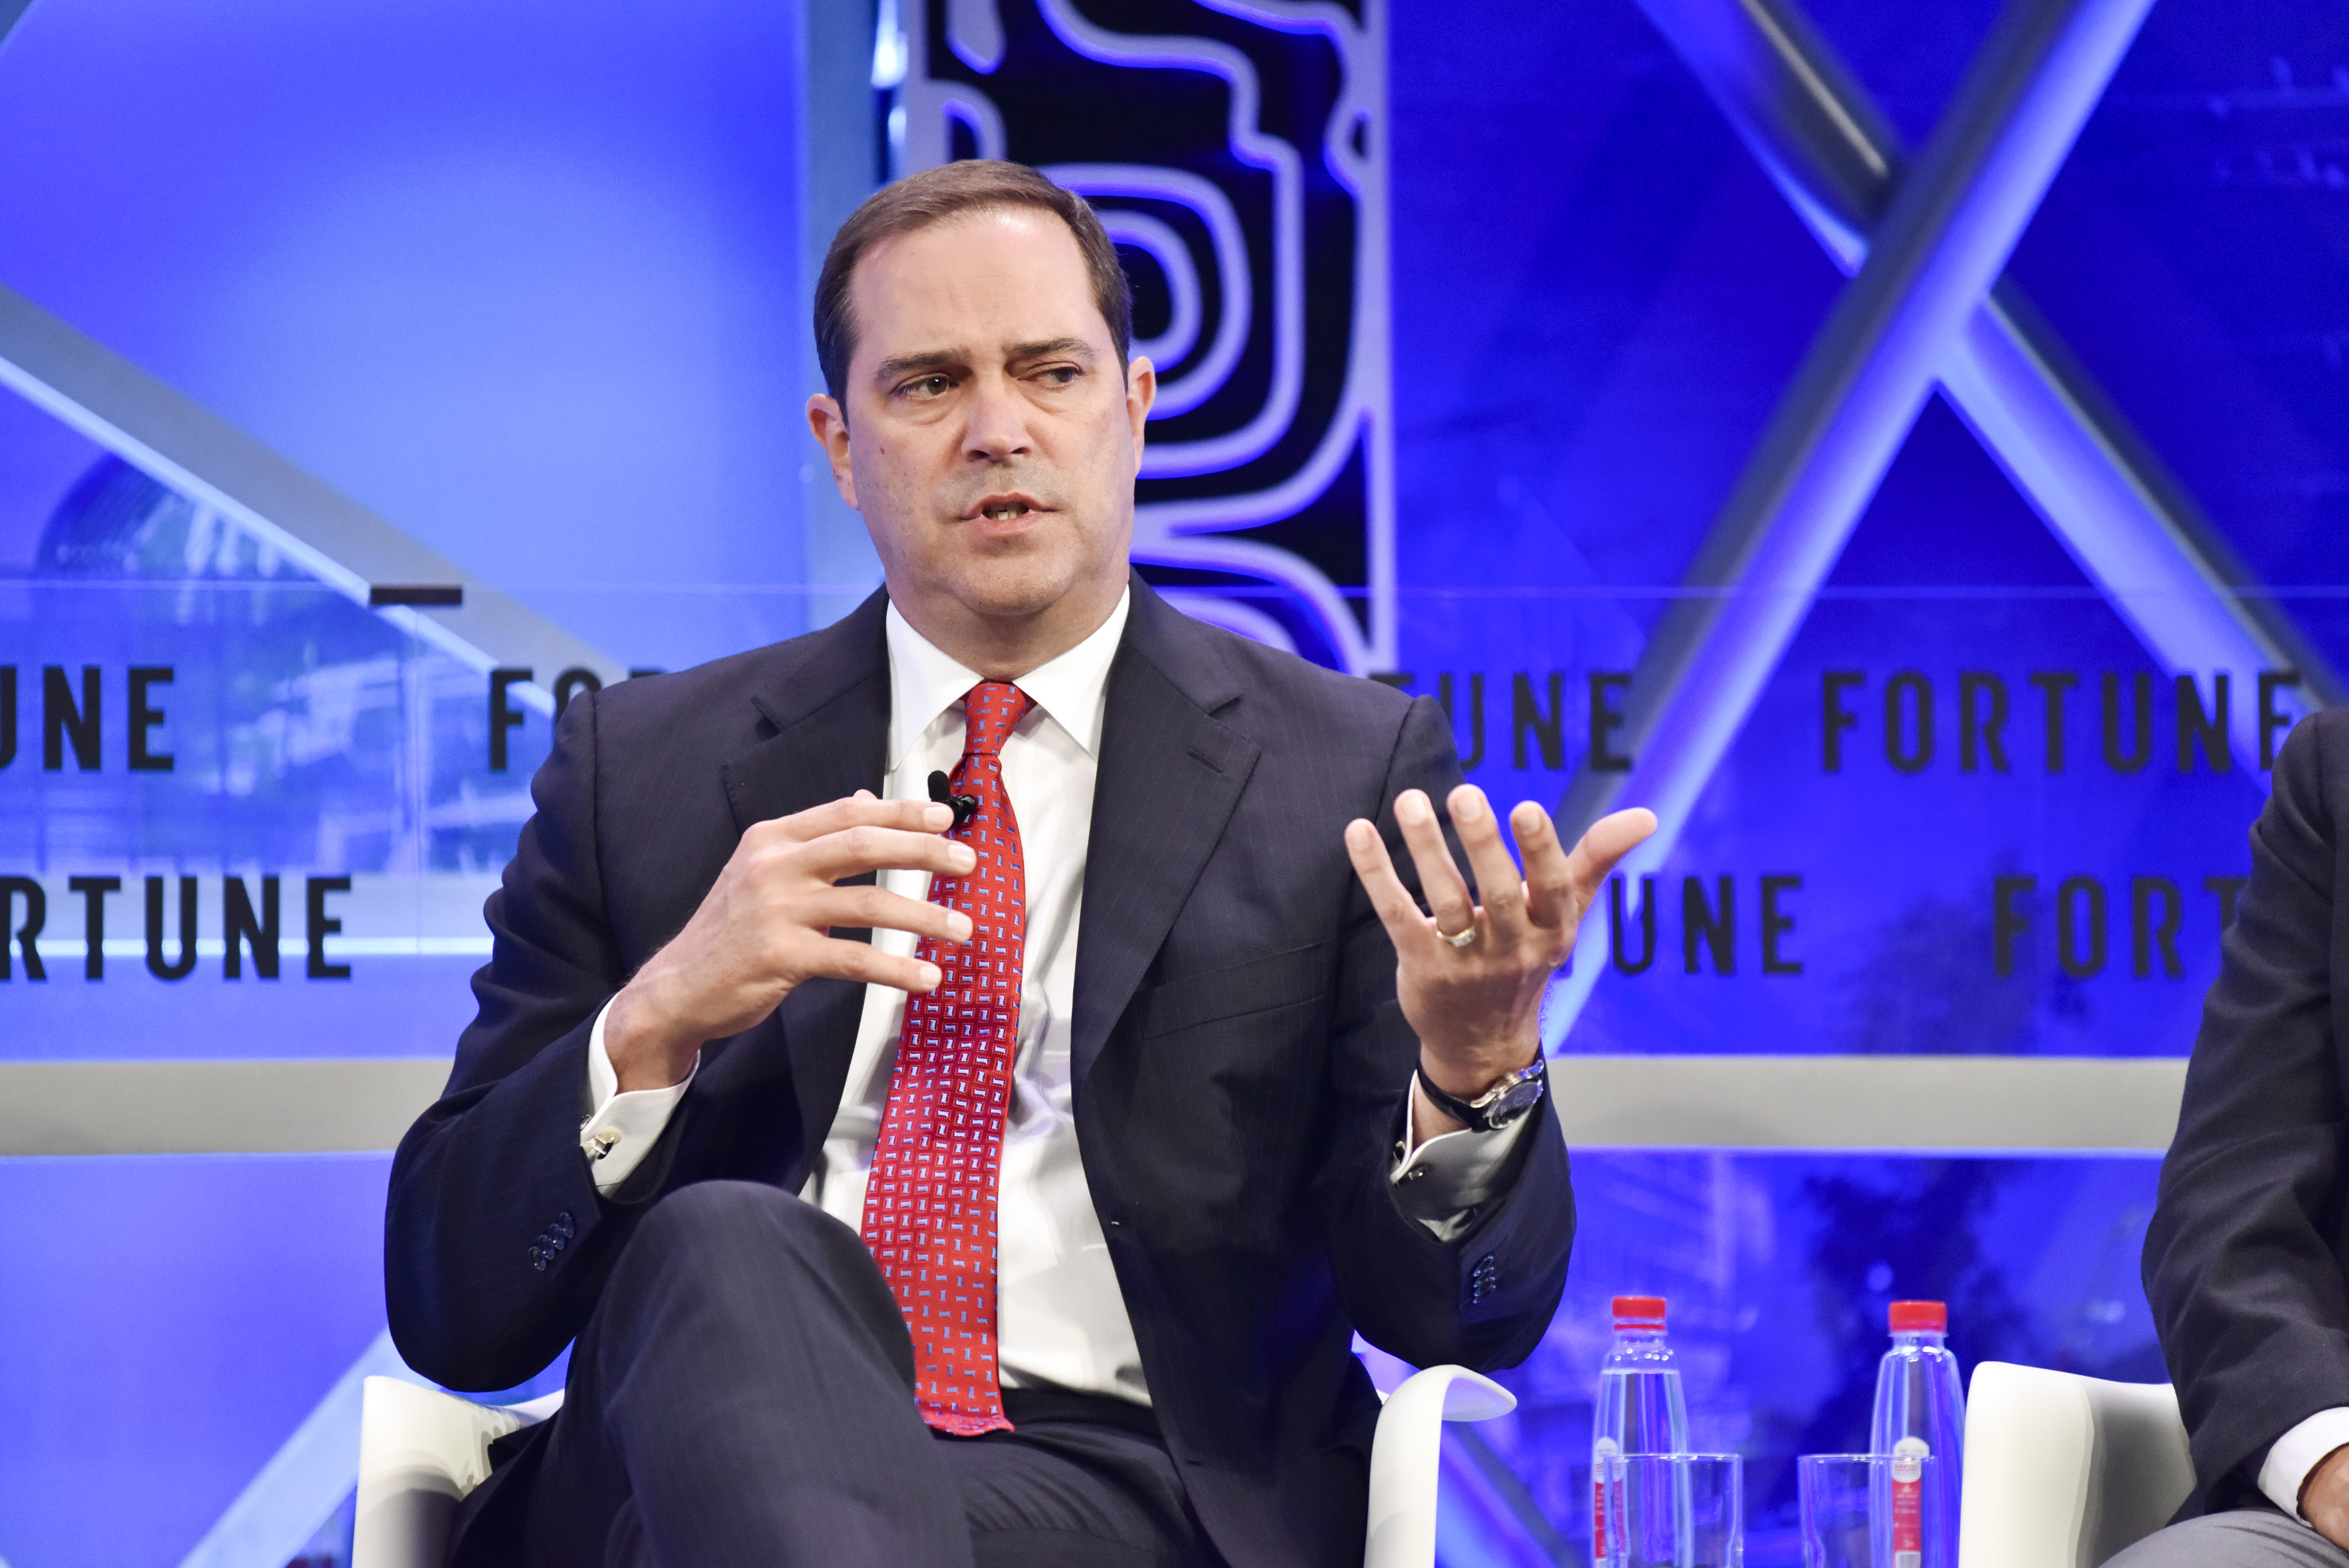 Chuck Robbins, CEO of Cisco Systems, appears at the Fortune Global Forum 2017 in Guangzhou, China.